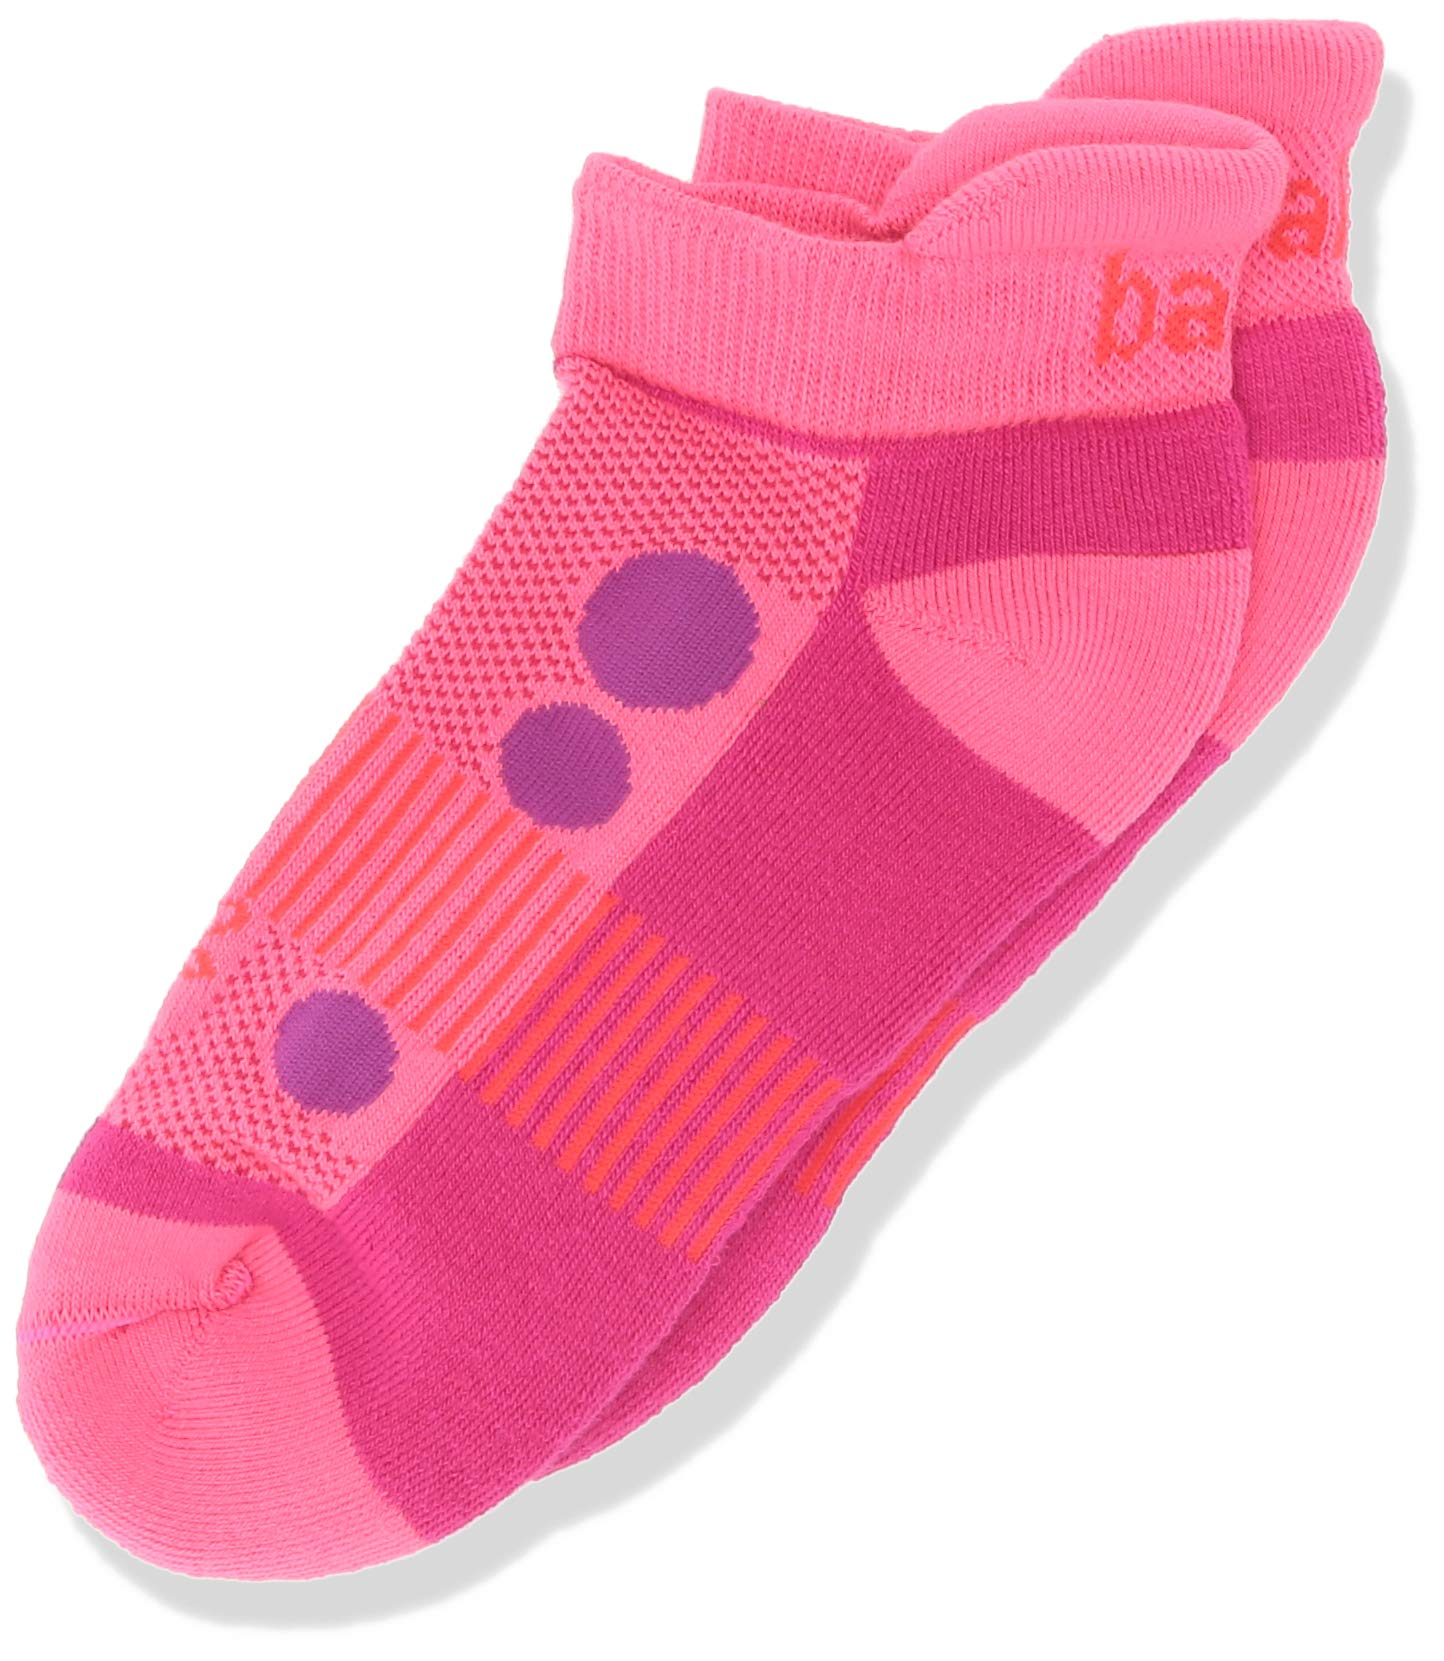 Balega Kids Hidden Cool Socks (1 Pair), Watermelon/Pink, X-Large by Balega